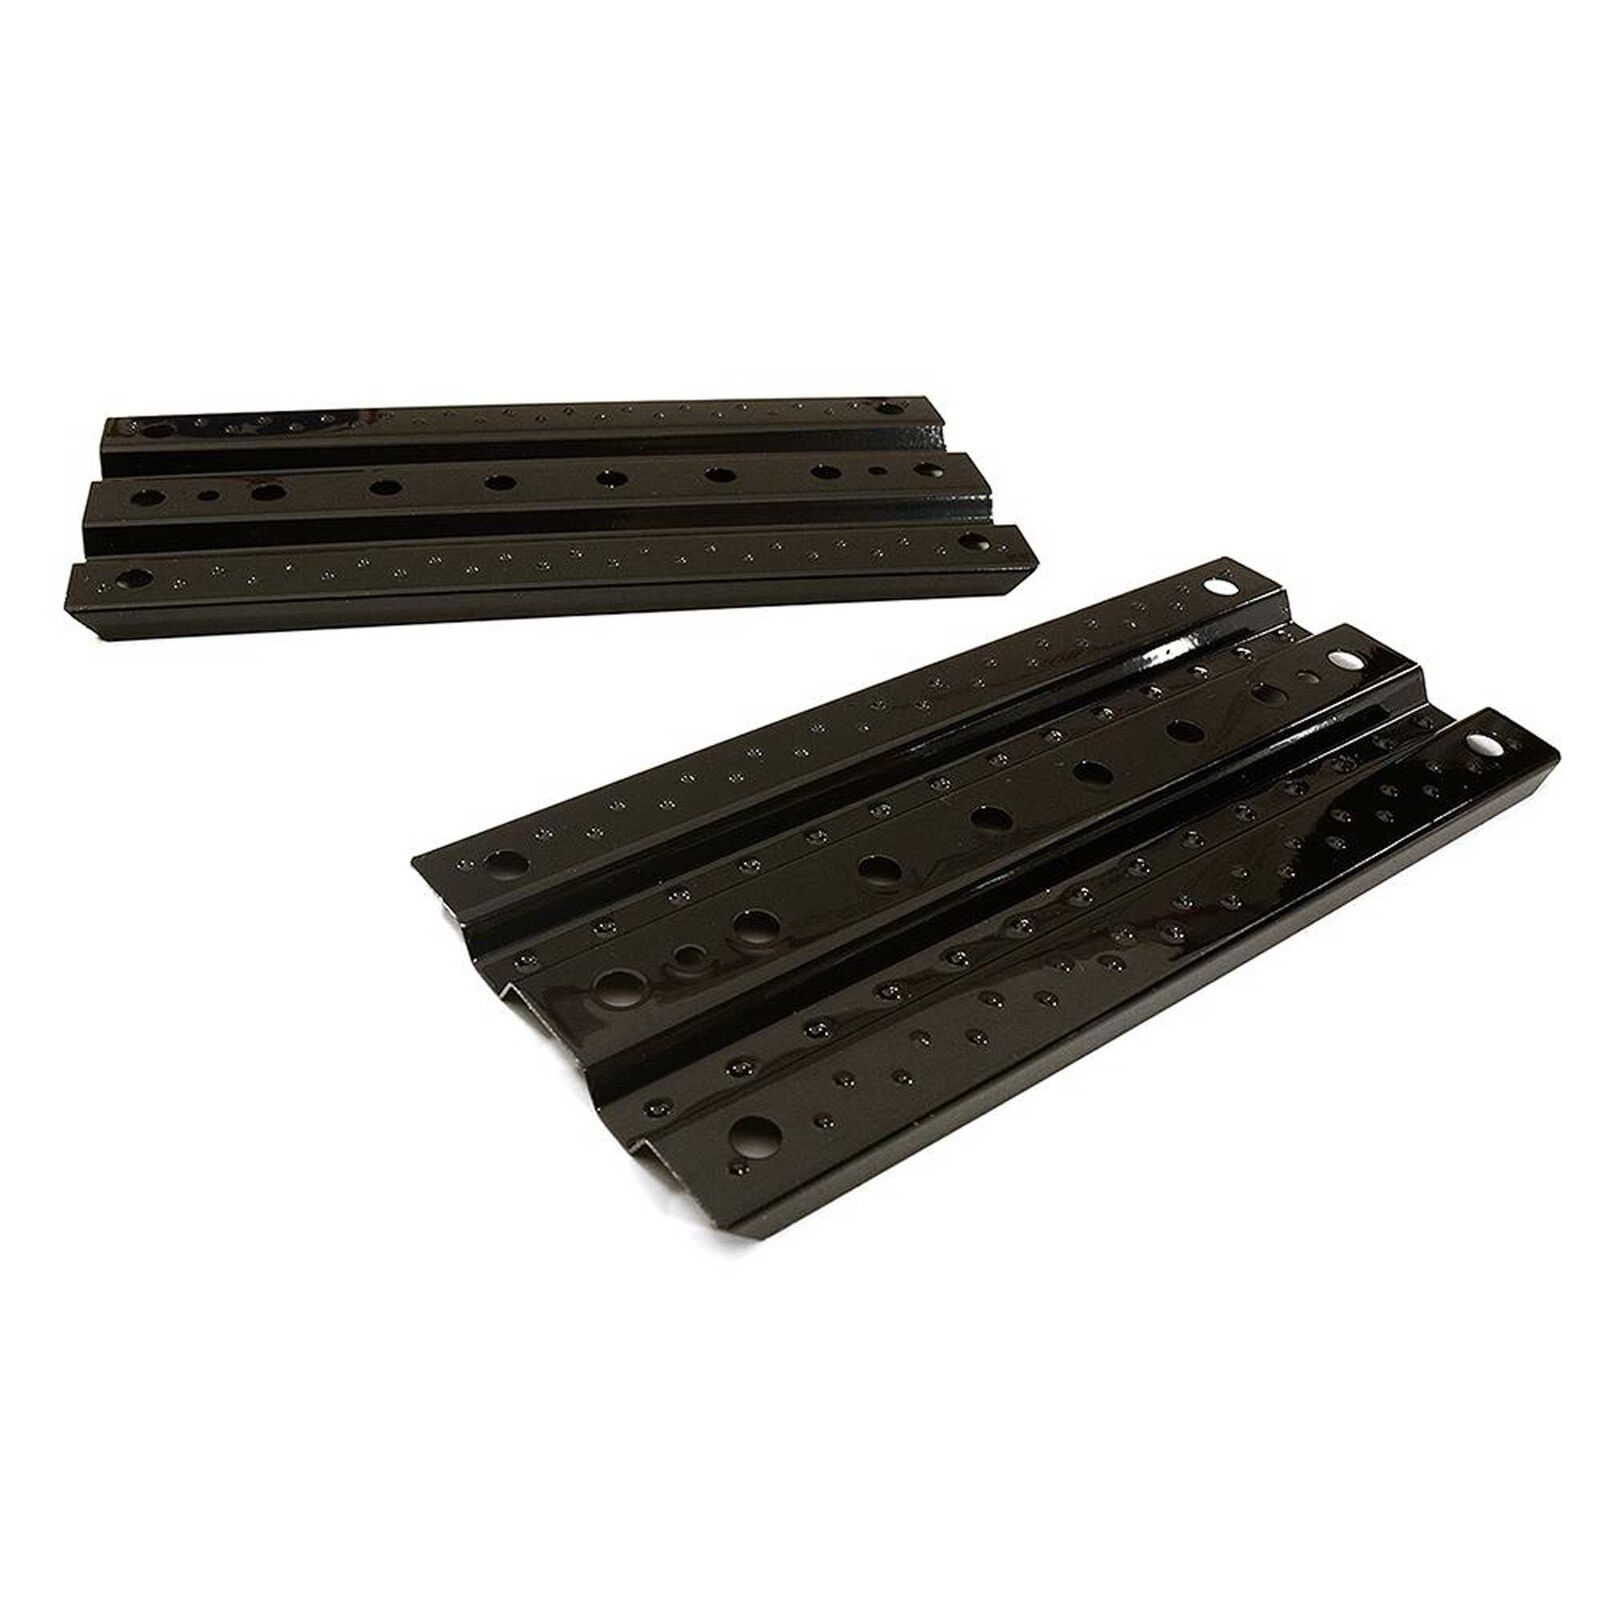 Vehicle Extraction & Recovery Boards: 1/10 Crawler